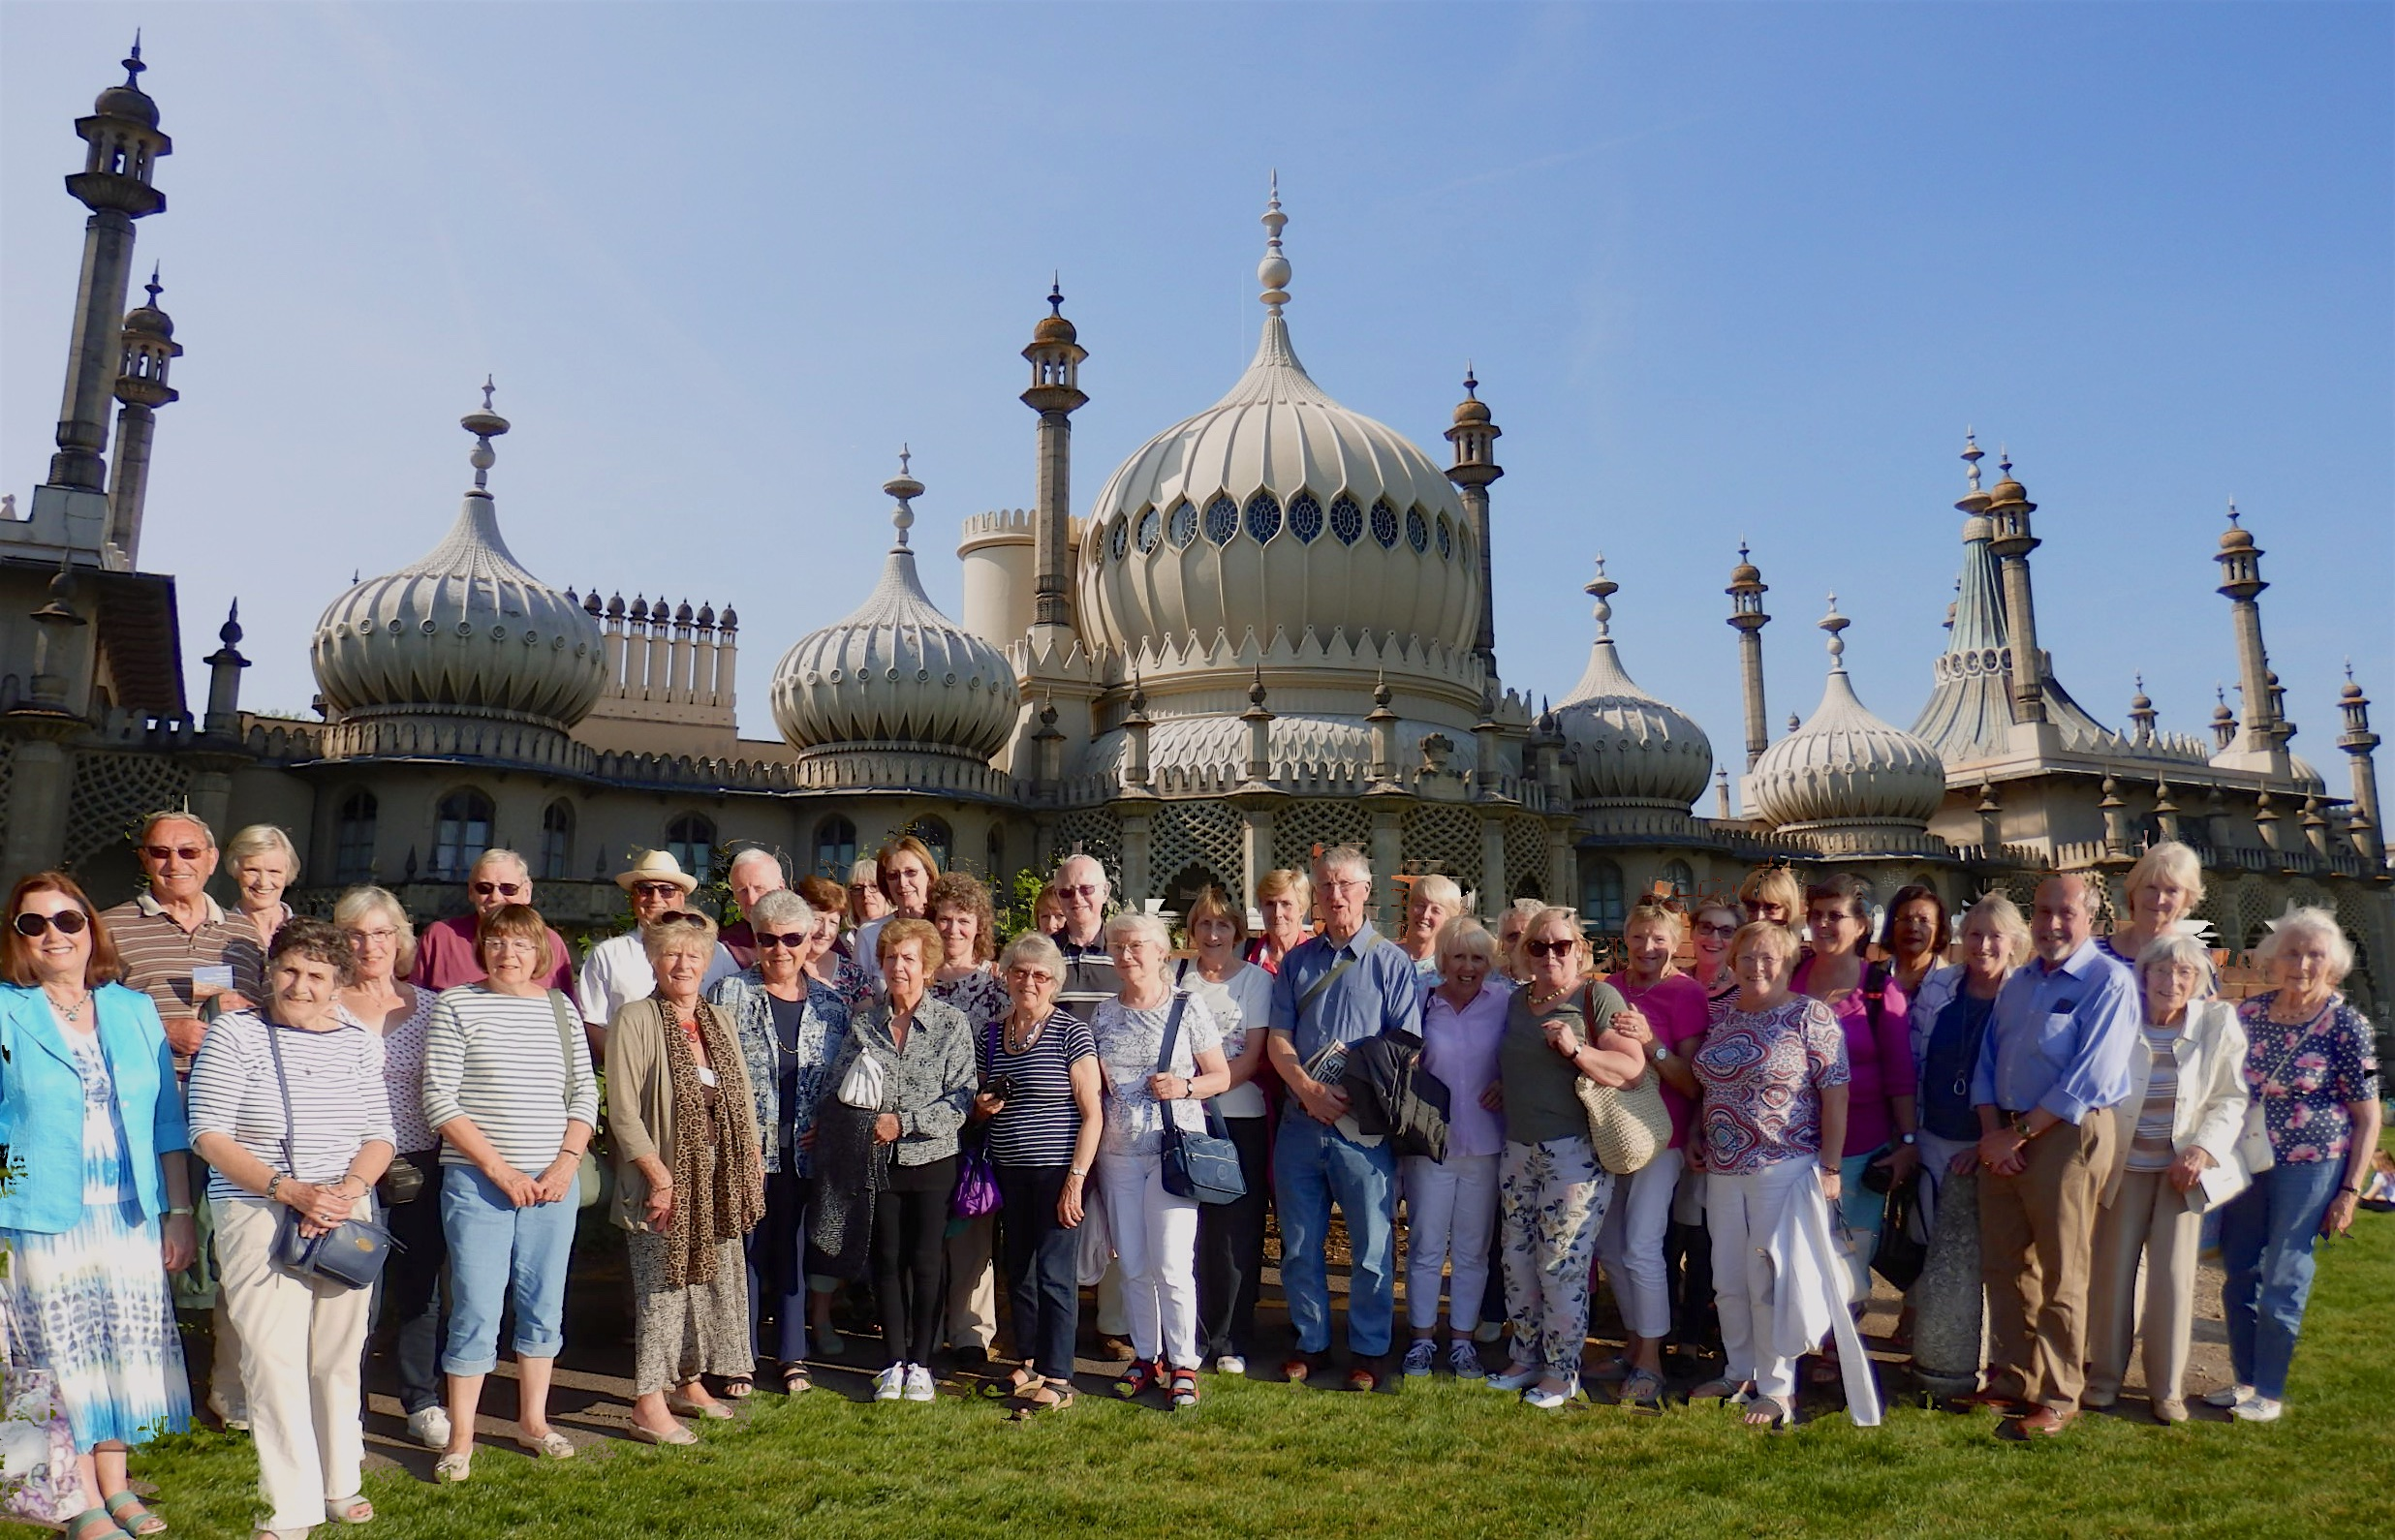 Brighton Pavilion Group